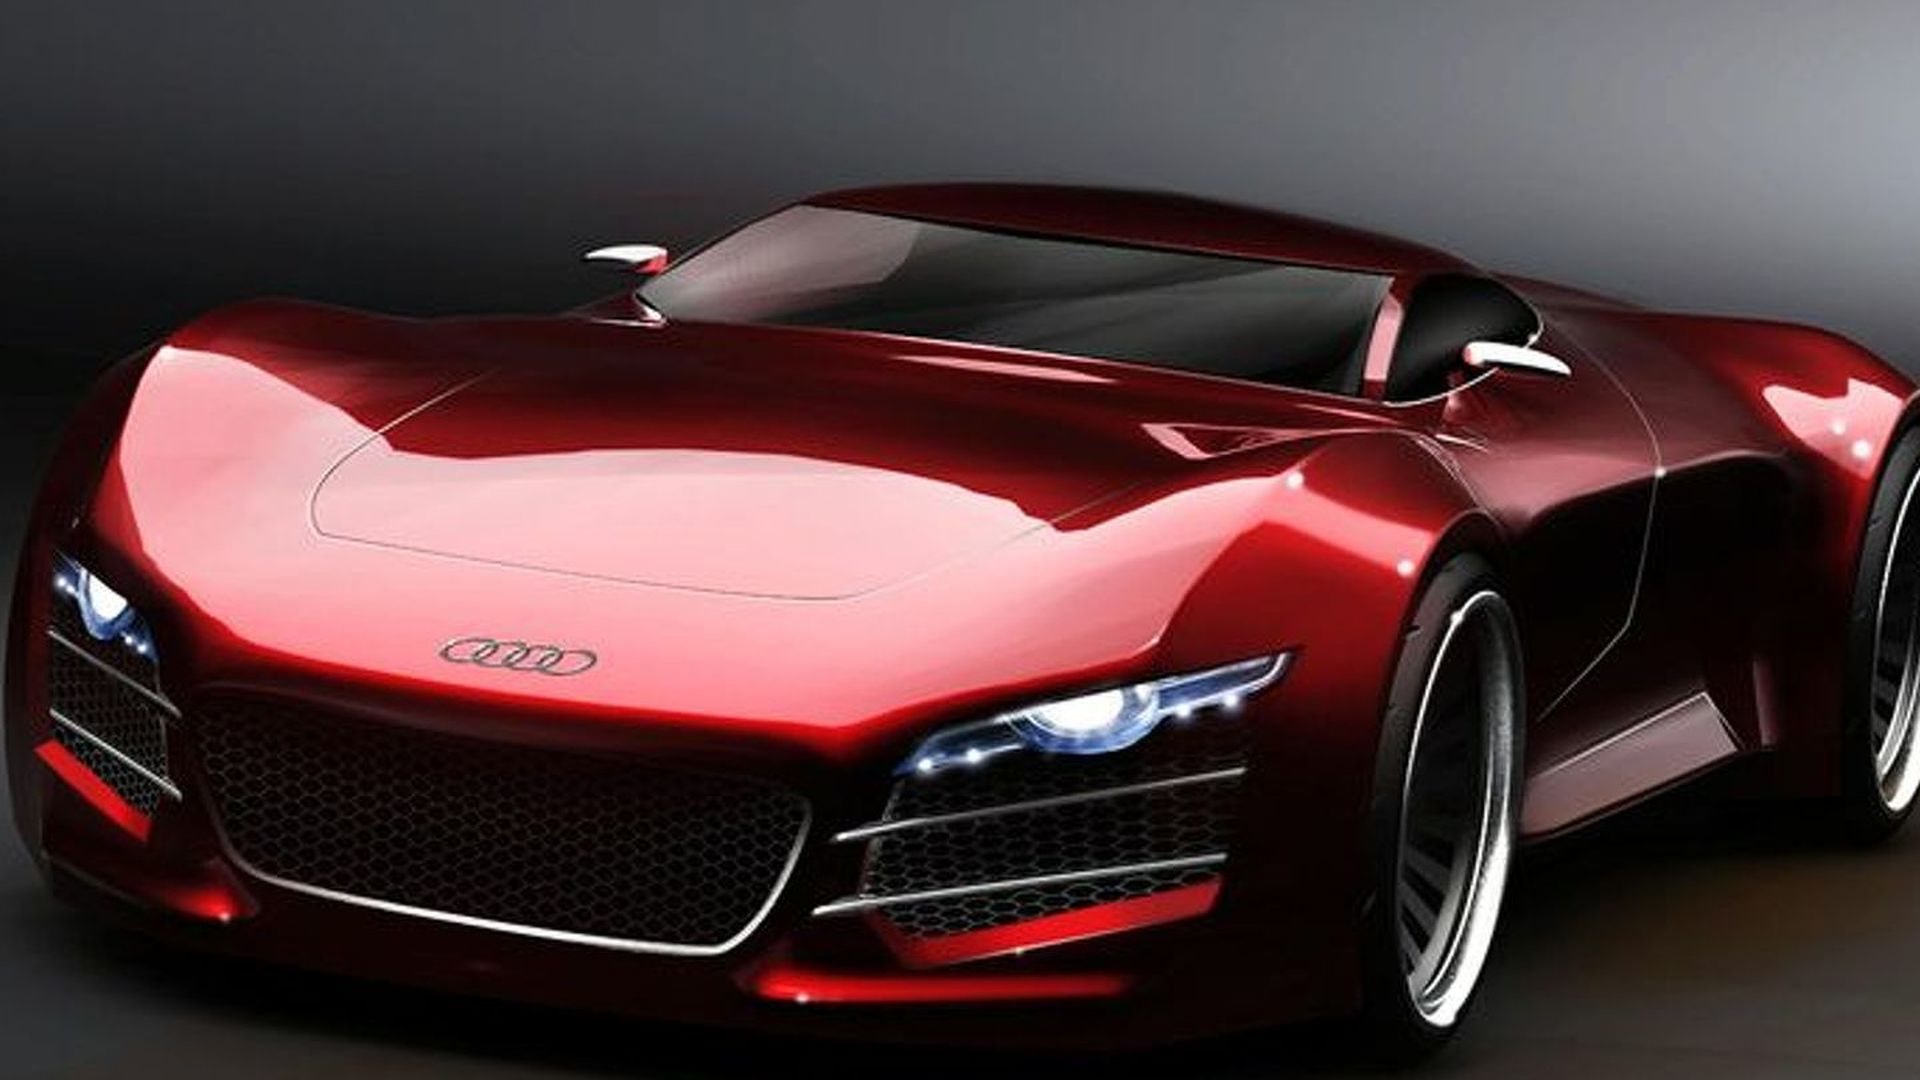 Audi Supercar To Be Very Special Not Approved Yet - Audi supercar